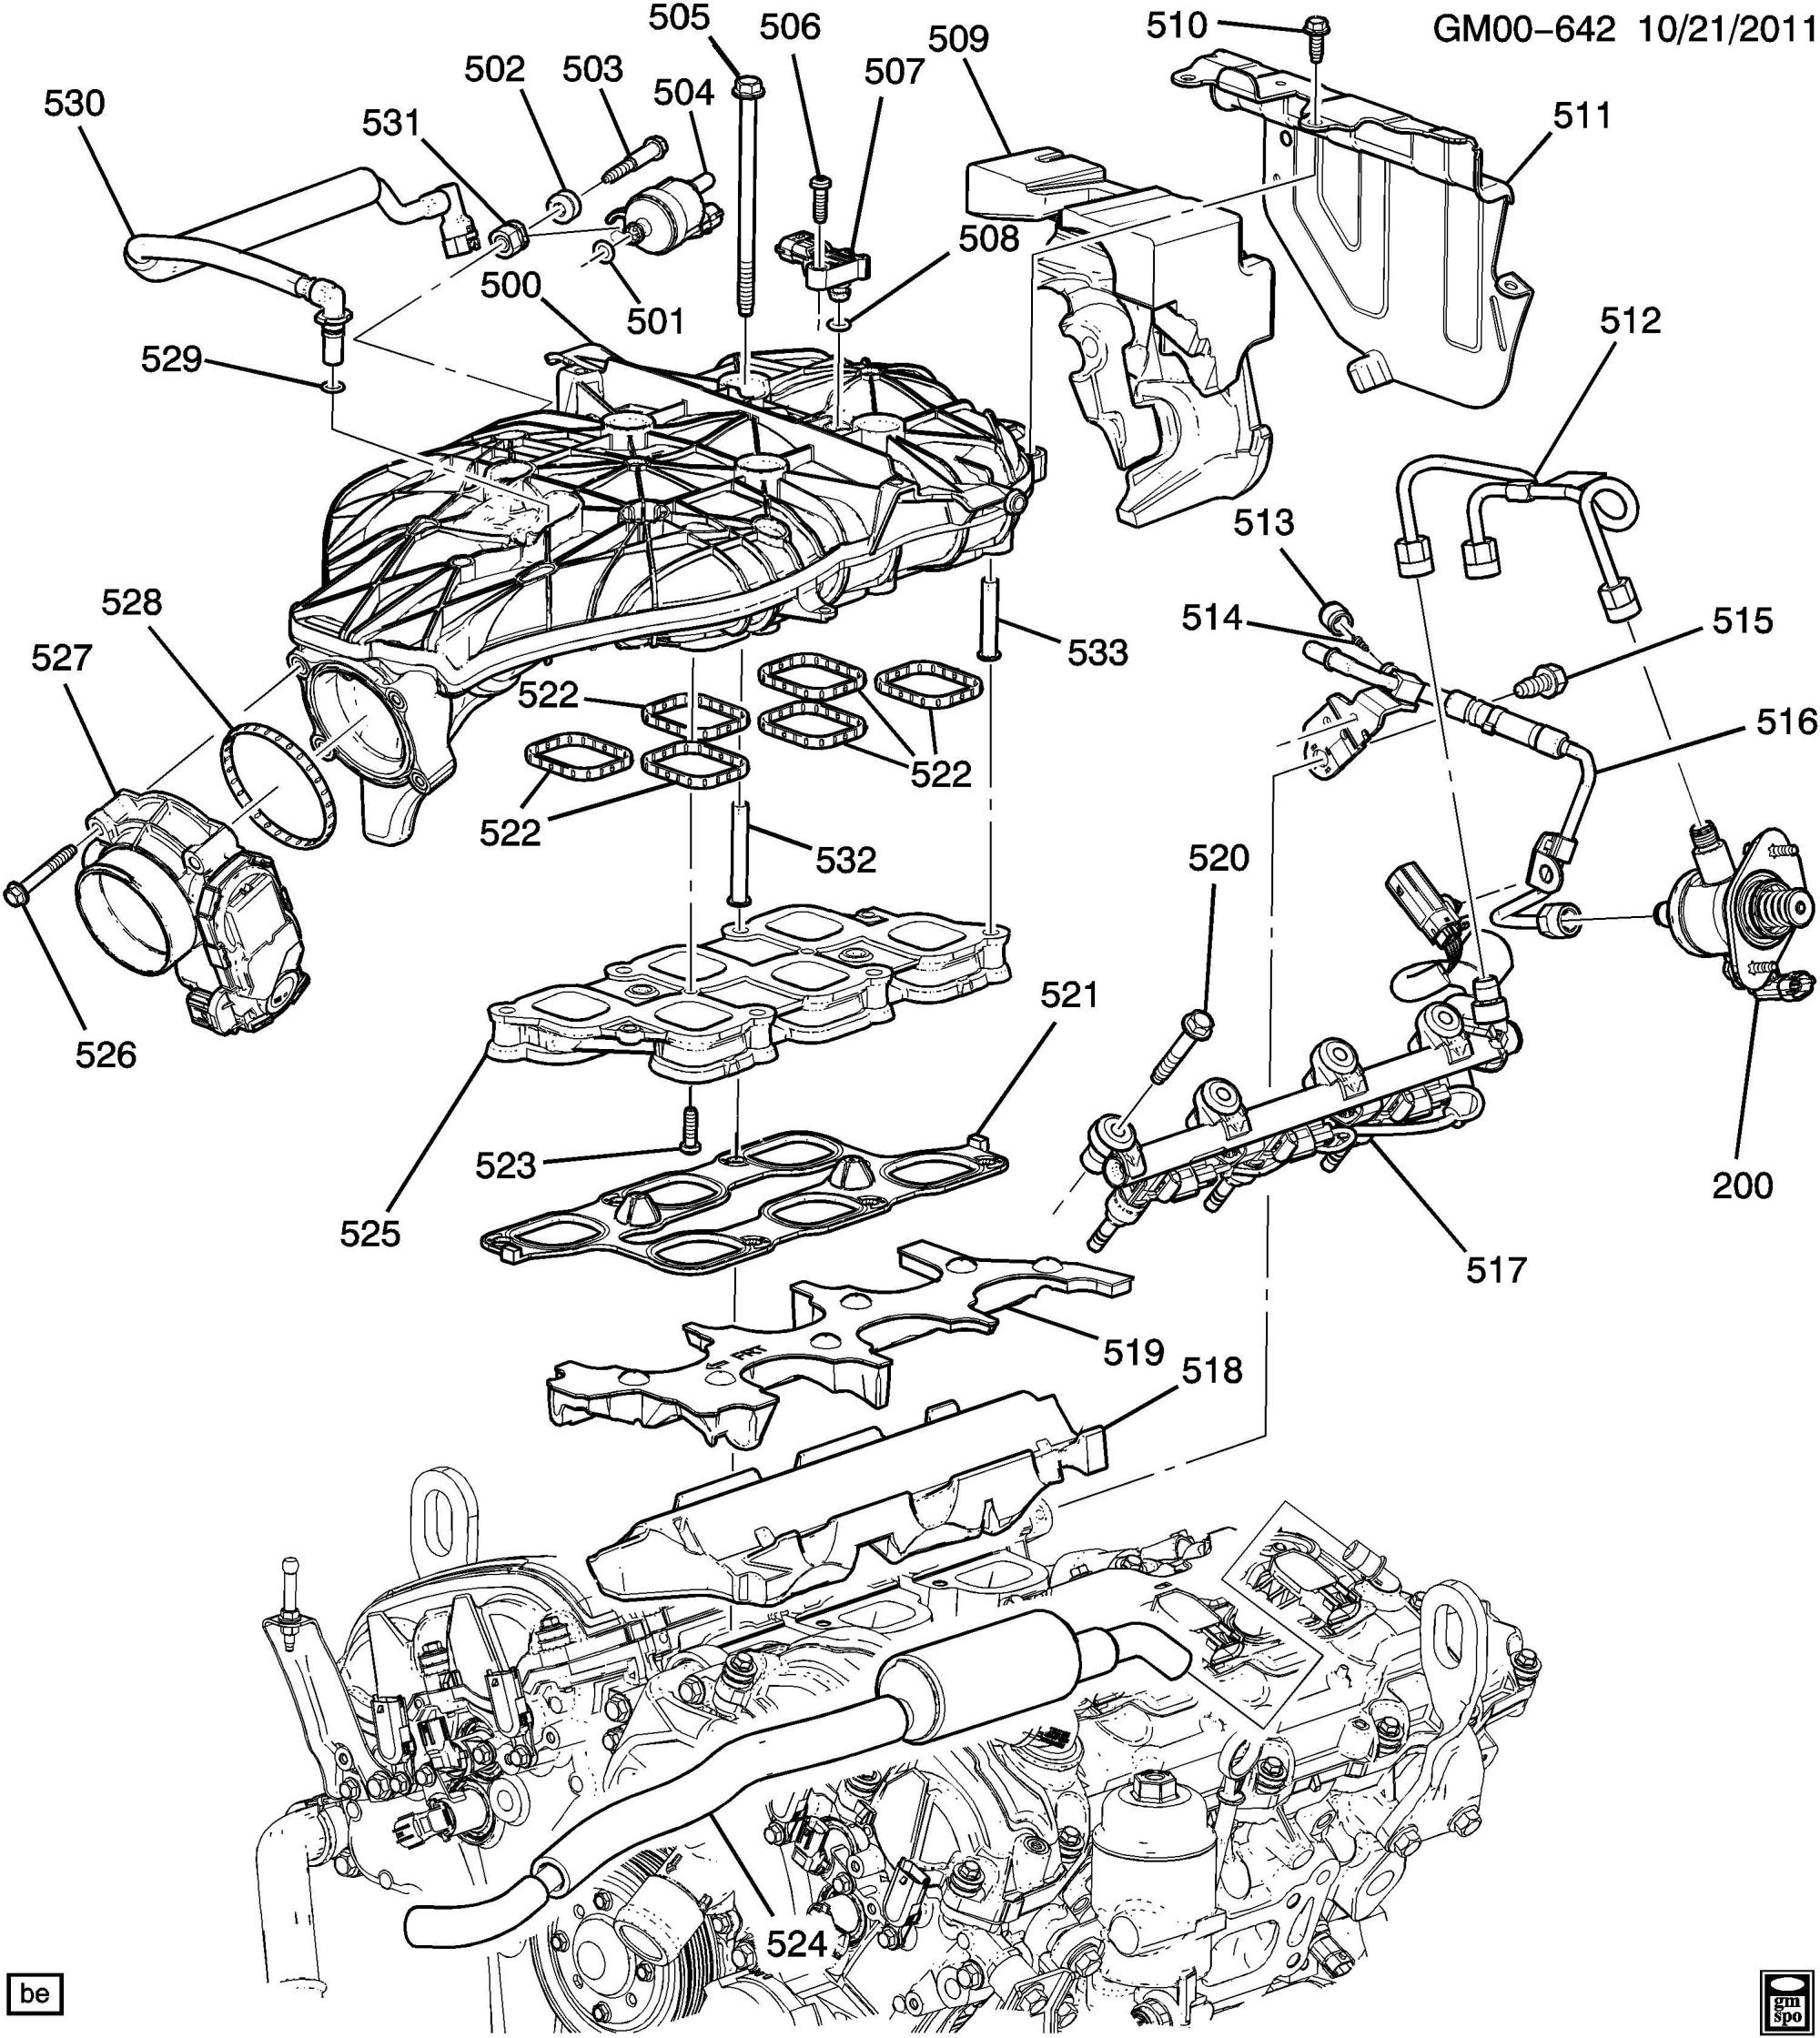 hight resolution of chrysler 3 3 v6 engine diagram wiring diagram more chrysler 3 3 engine diagram